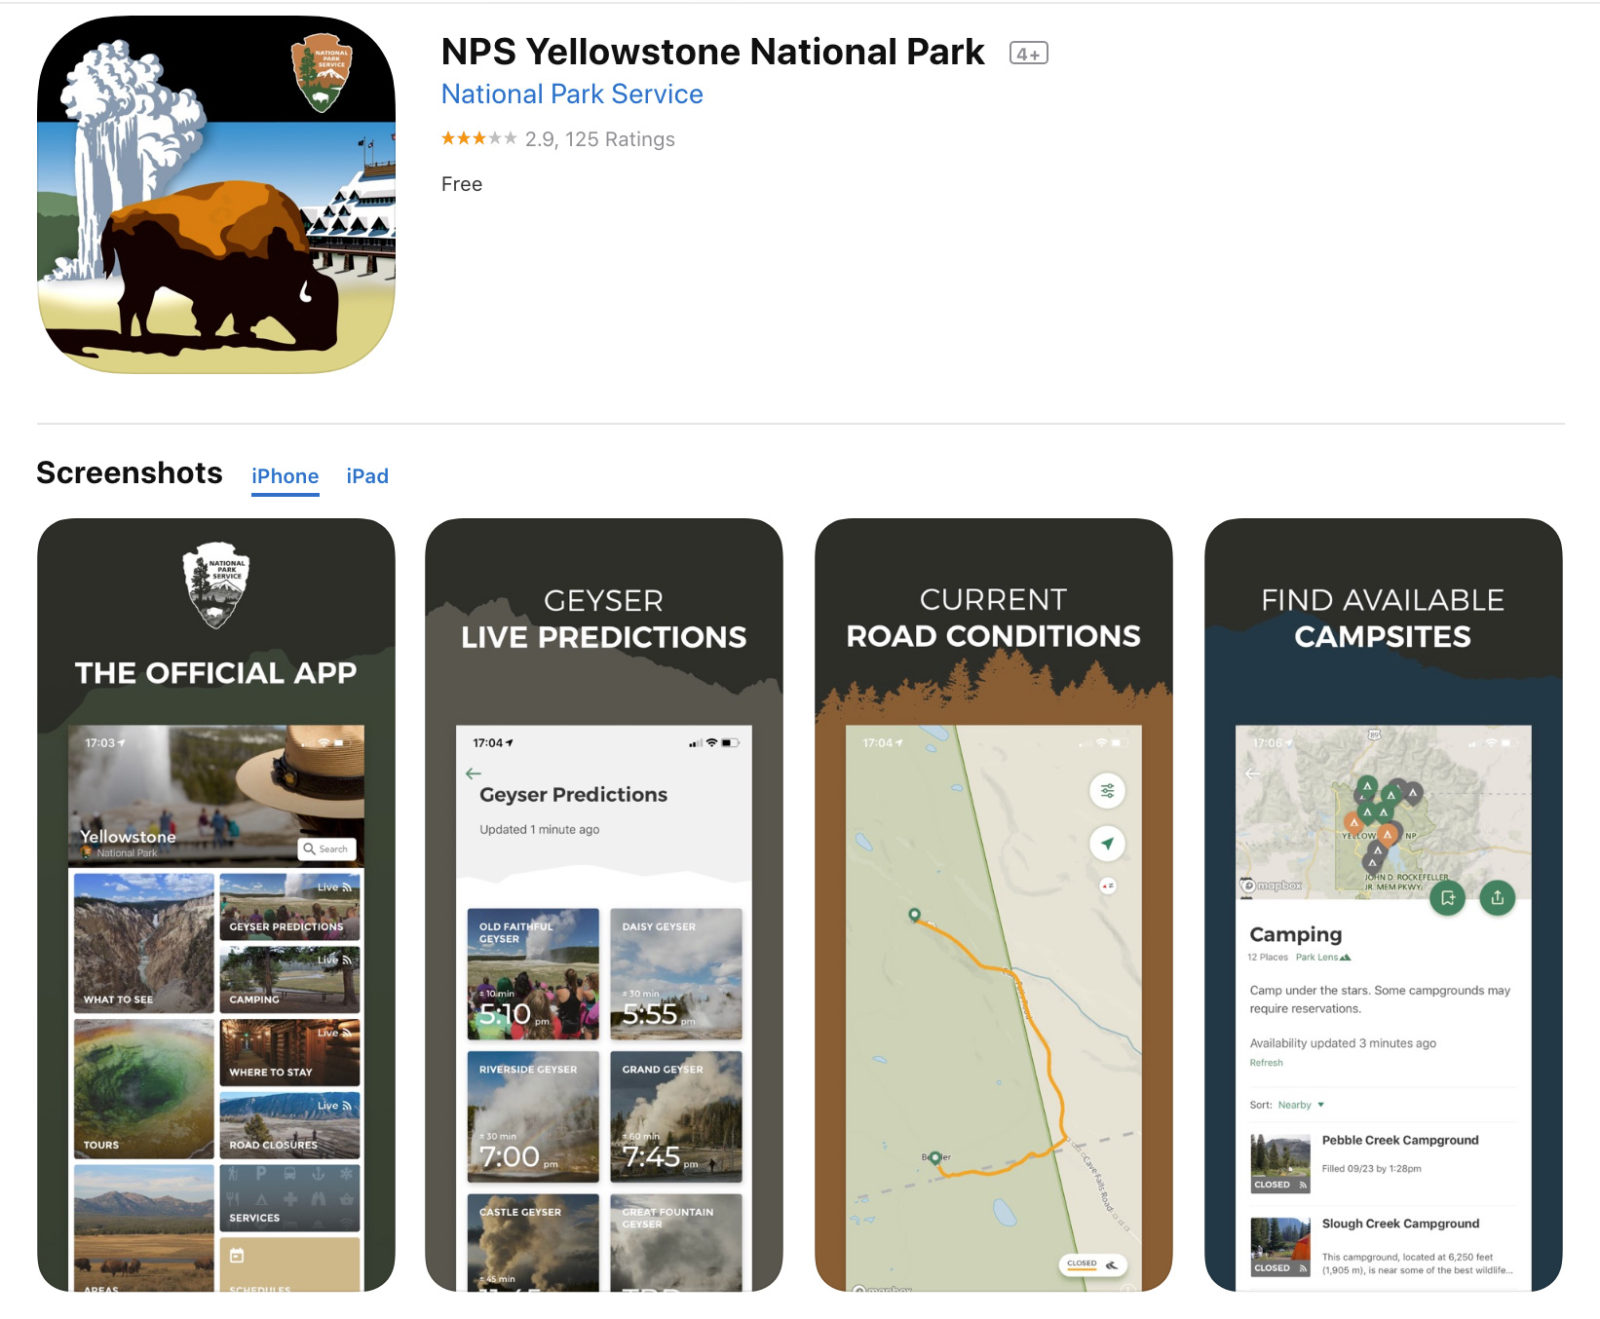 Heading to Wyoming, Montana or Idaho to go to one of the most beautiful national parks in the United States? We have helpful Yellowstone Tips and Facts for visting this breathtaking park, including photography, hiking and lodging info, things to do during your road trip there and must see areas and wildlife you may spot! Click through for additional information! #SometimesHome #YellowstoneTip #YellowstoneNationalPark #NPS #NationalParks #UnitedStatesParks #Wyoming #Montana #Idaho